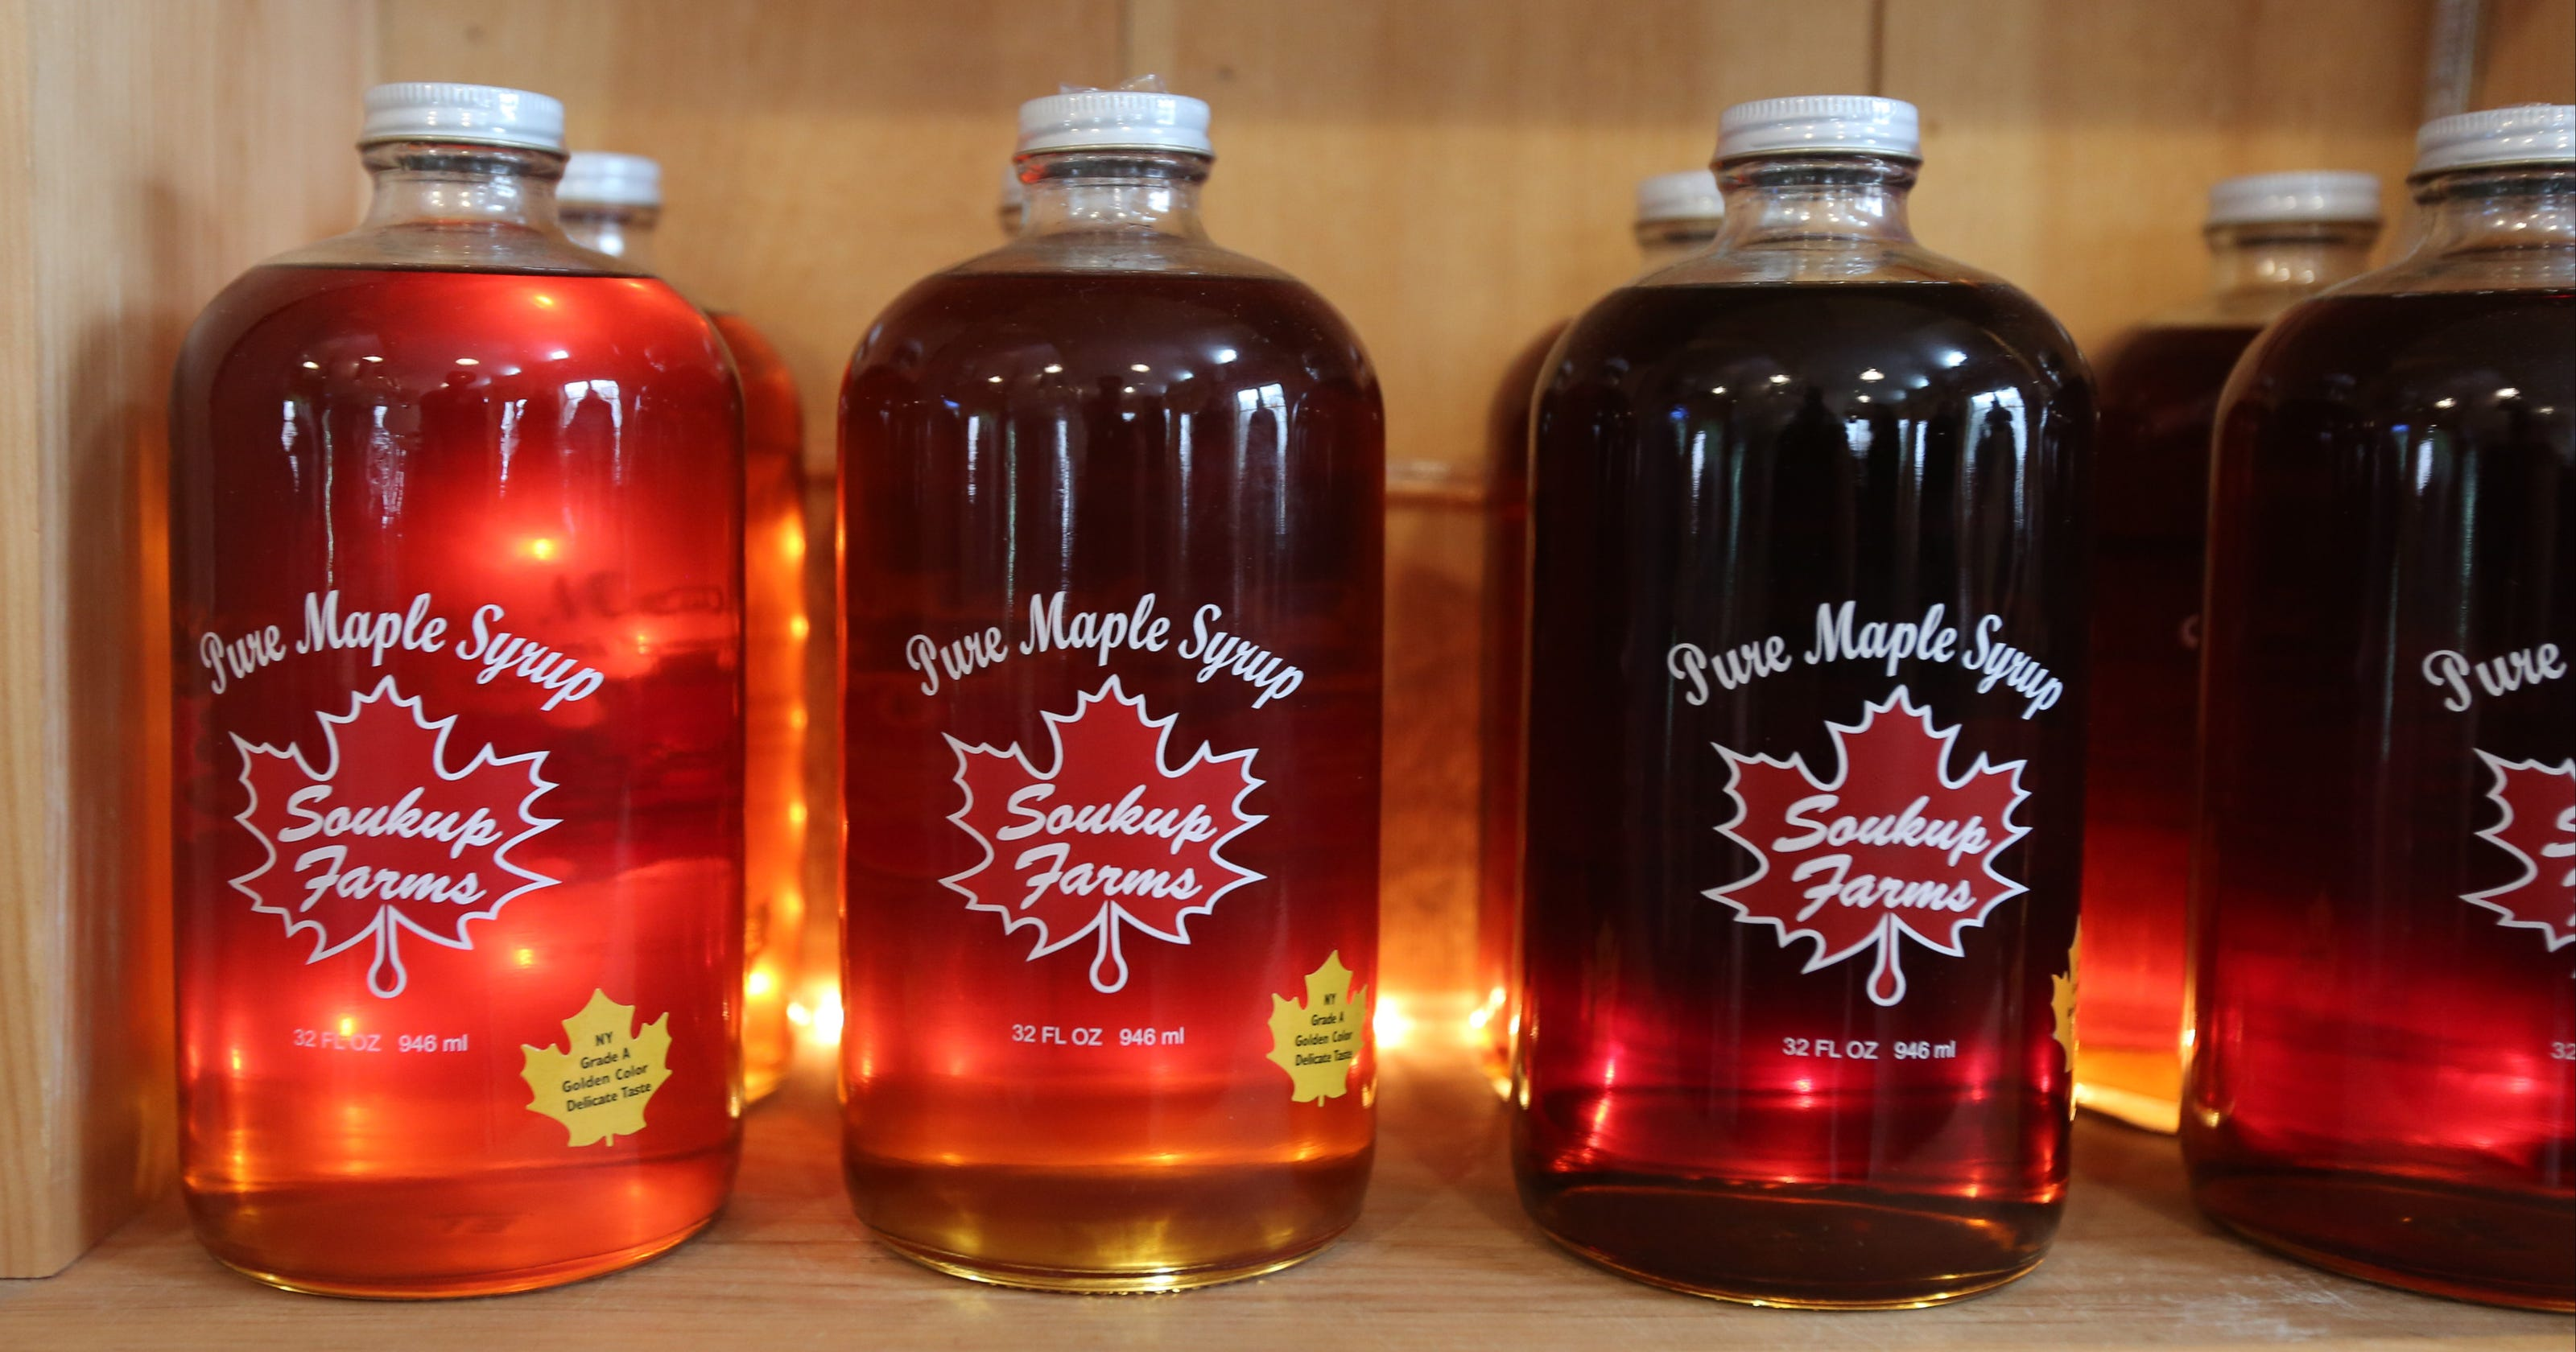 dbd8ef74da9 5 spots serving up maple syrup dishes